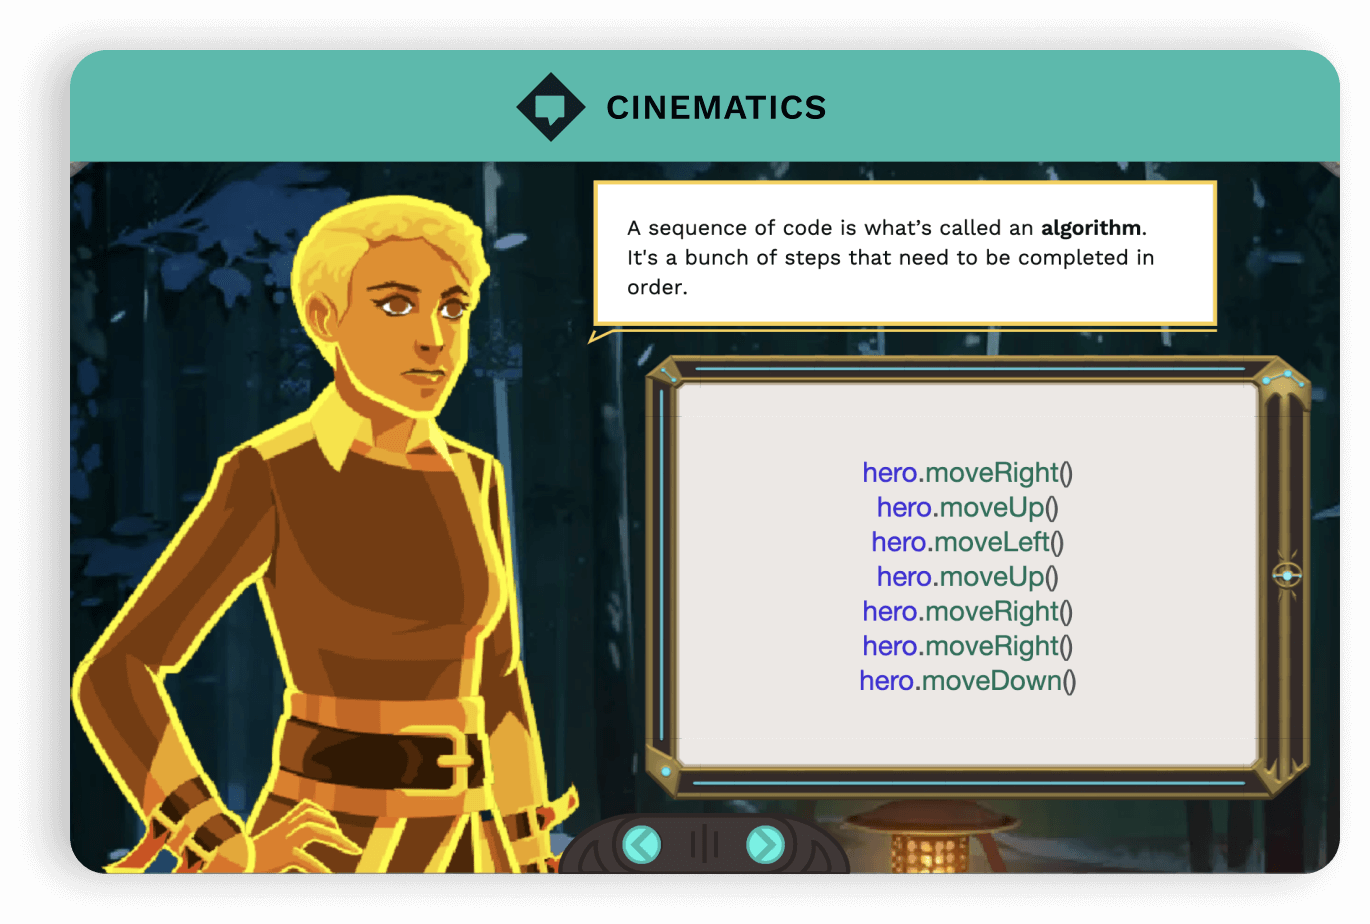 Example of cinematic. Close up of Vega character with speech bubble that says 'A sequence of code is what's called an algorithm. It's a bunch of steps that need to be completed in order.'